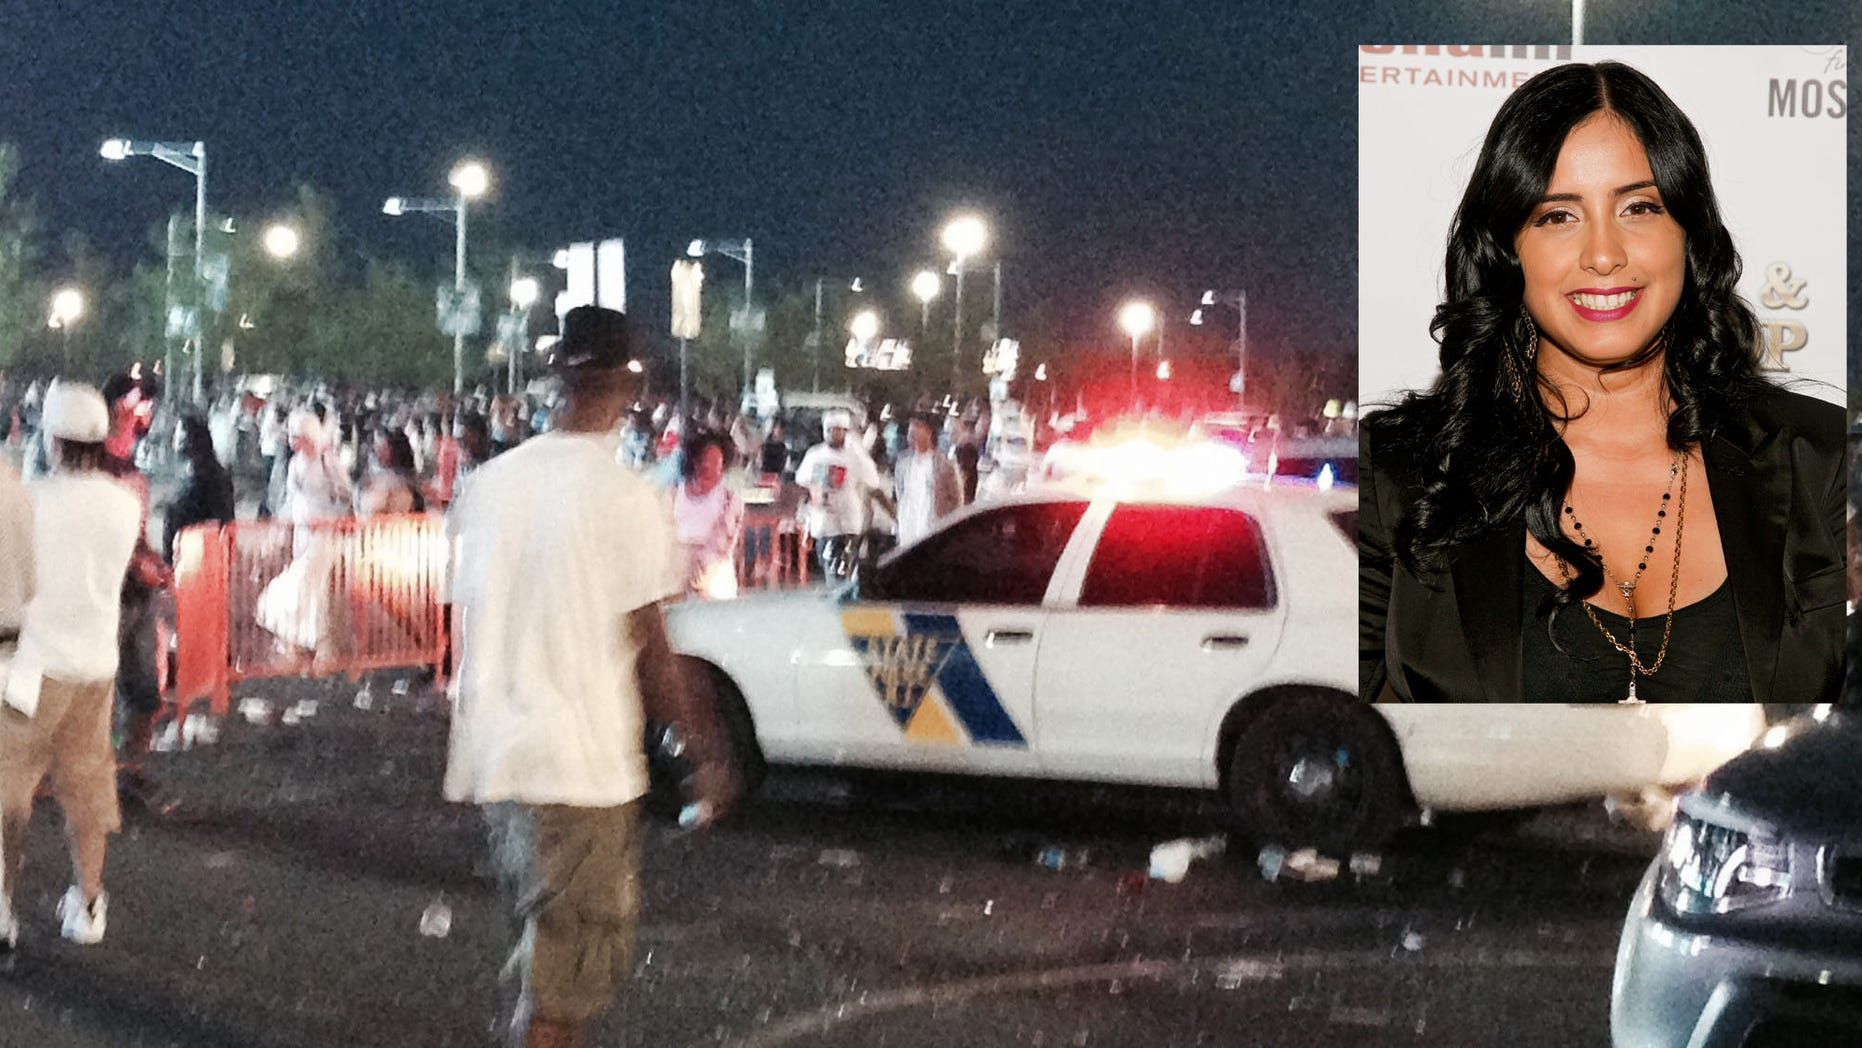 Fans at the Hot 97 Summer Jam concert confront police officers outside the MetLife Stadium in East Rutherford, N.J., Sunday, June 7, 2015. Crowds on Sunday night became upset when the gates were closed and blocked off by police in riot gear, the Asbury Park Press reported. (Chris Jordan/The Asbury Park Press via AP)  NO SALES